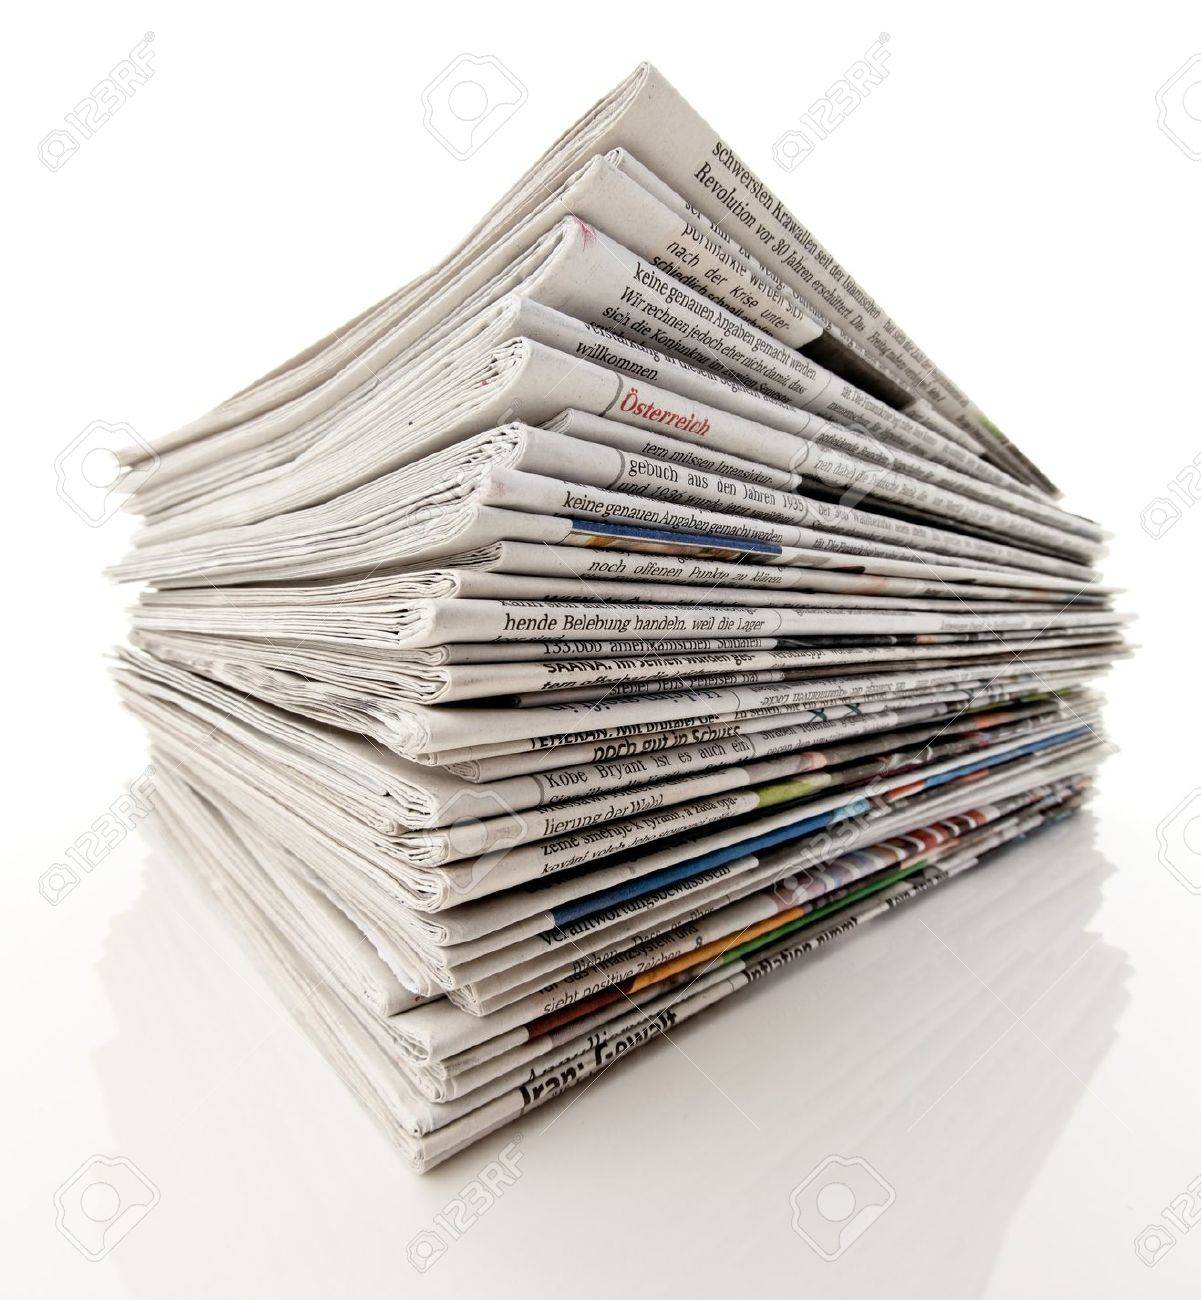 Old Newspapers And Magazines In A Pile Stock Photo, Picture And ...